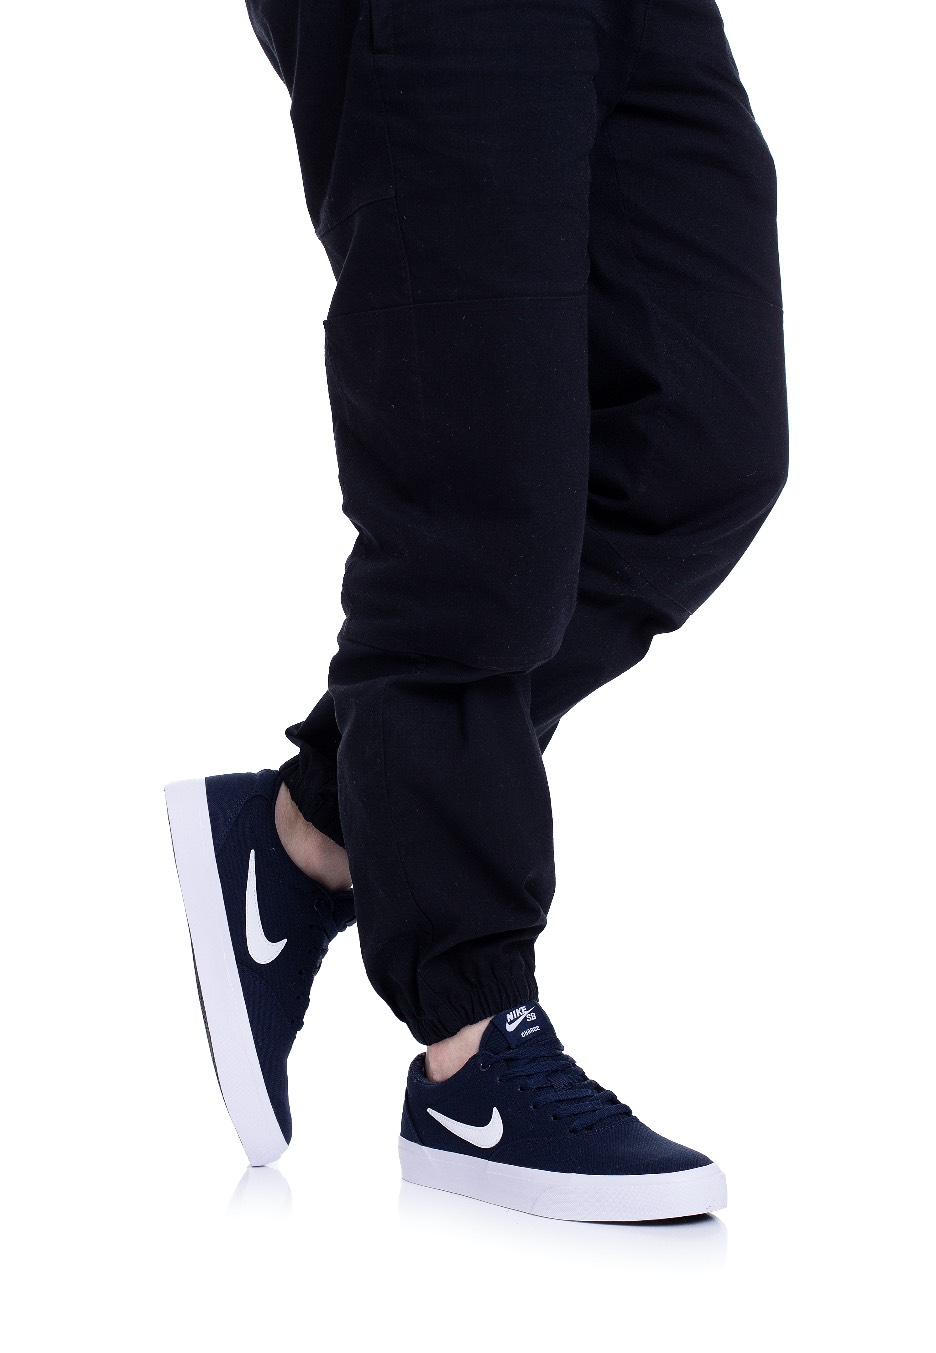 Nike - SB Charge Canvas Obsidian/White - Chaussures - Impericon.com FR